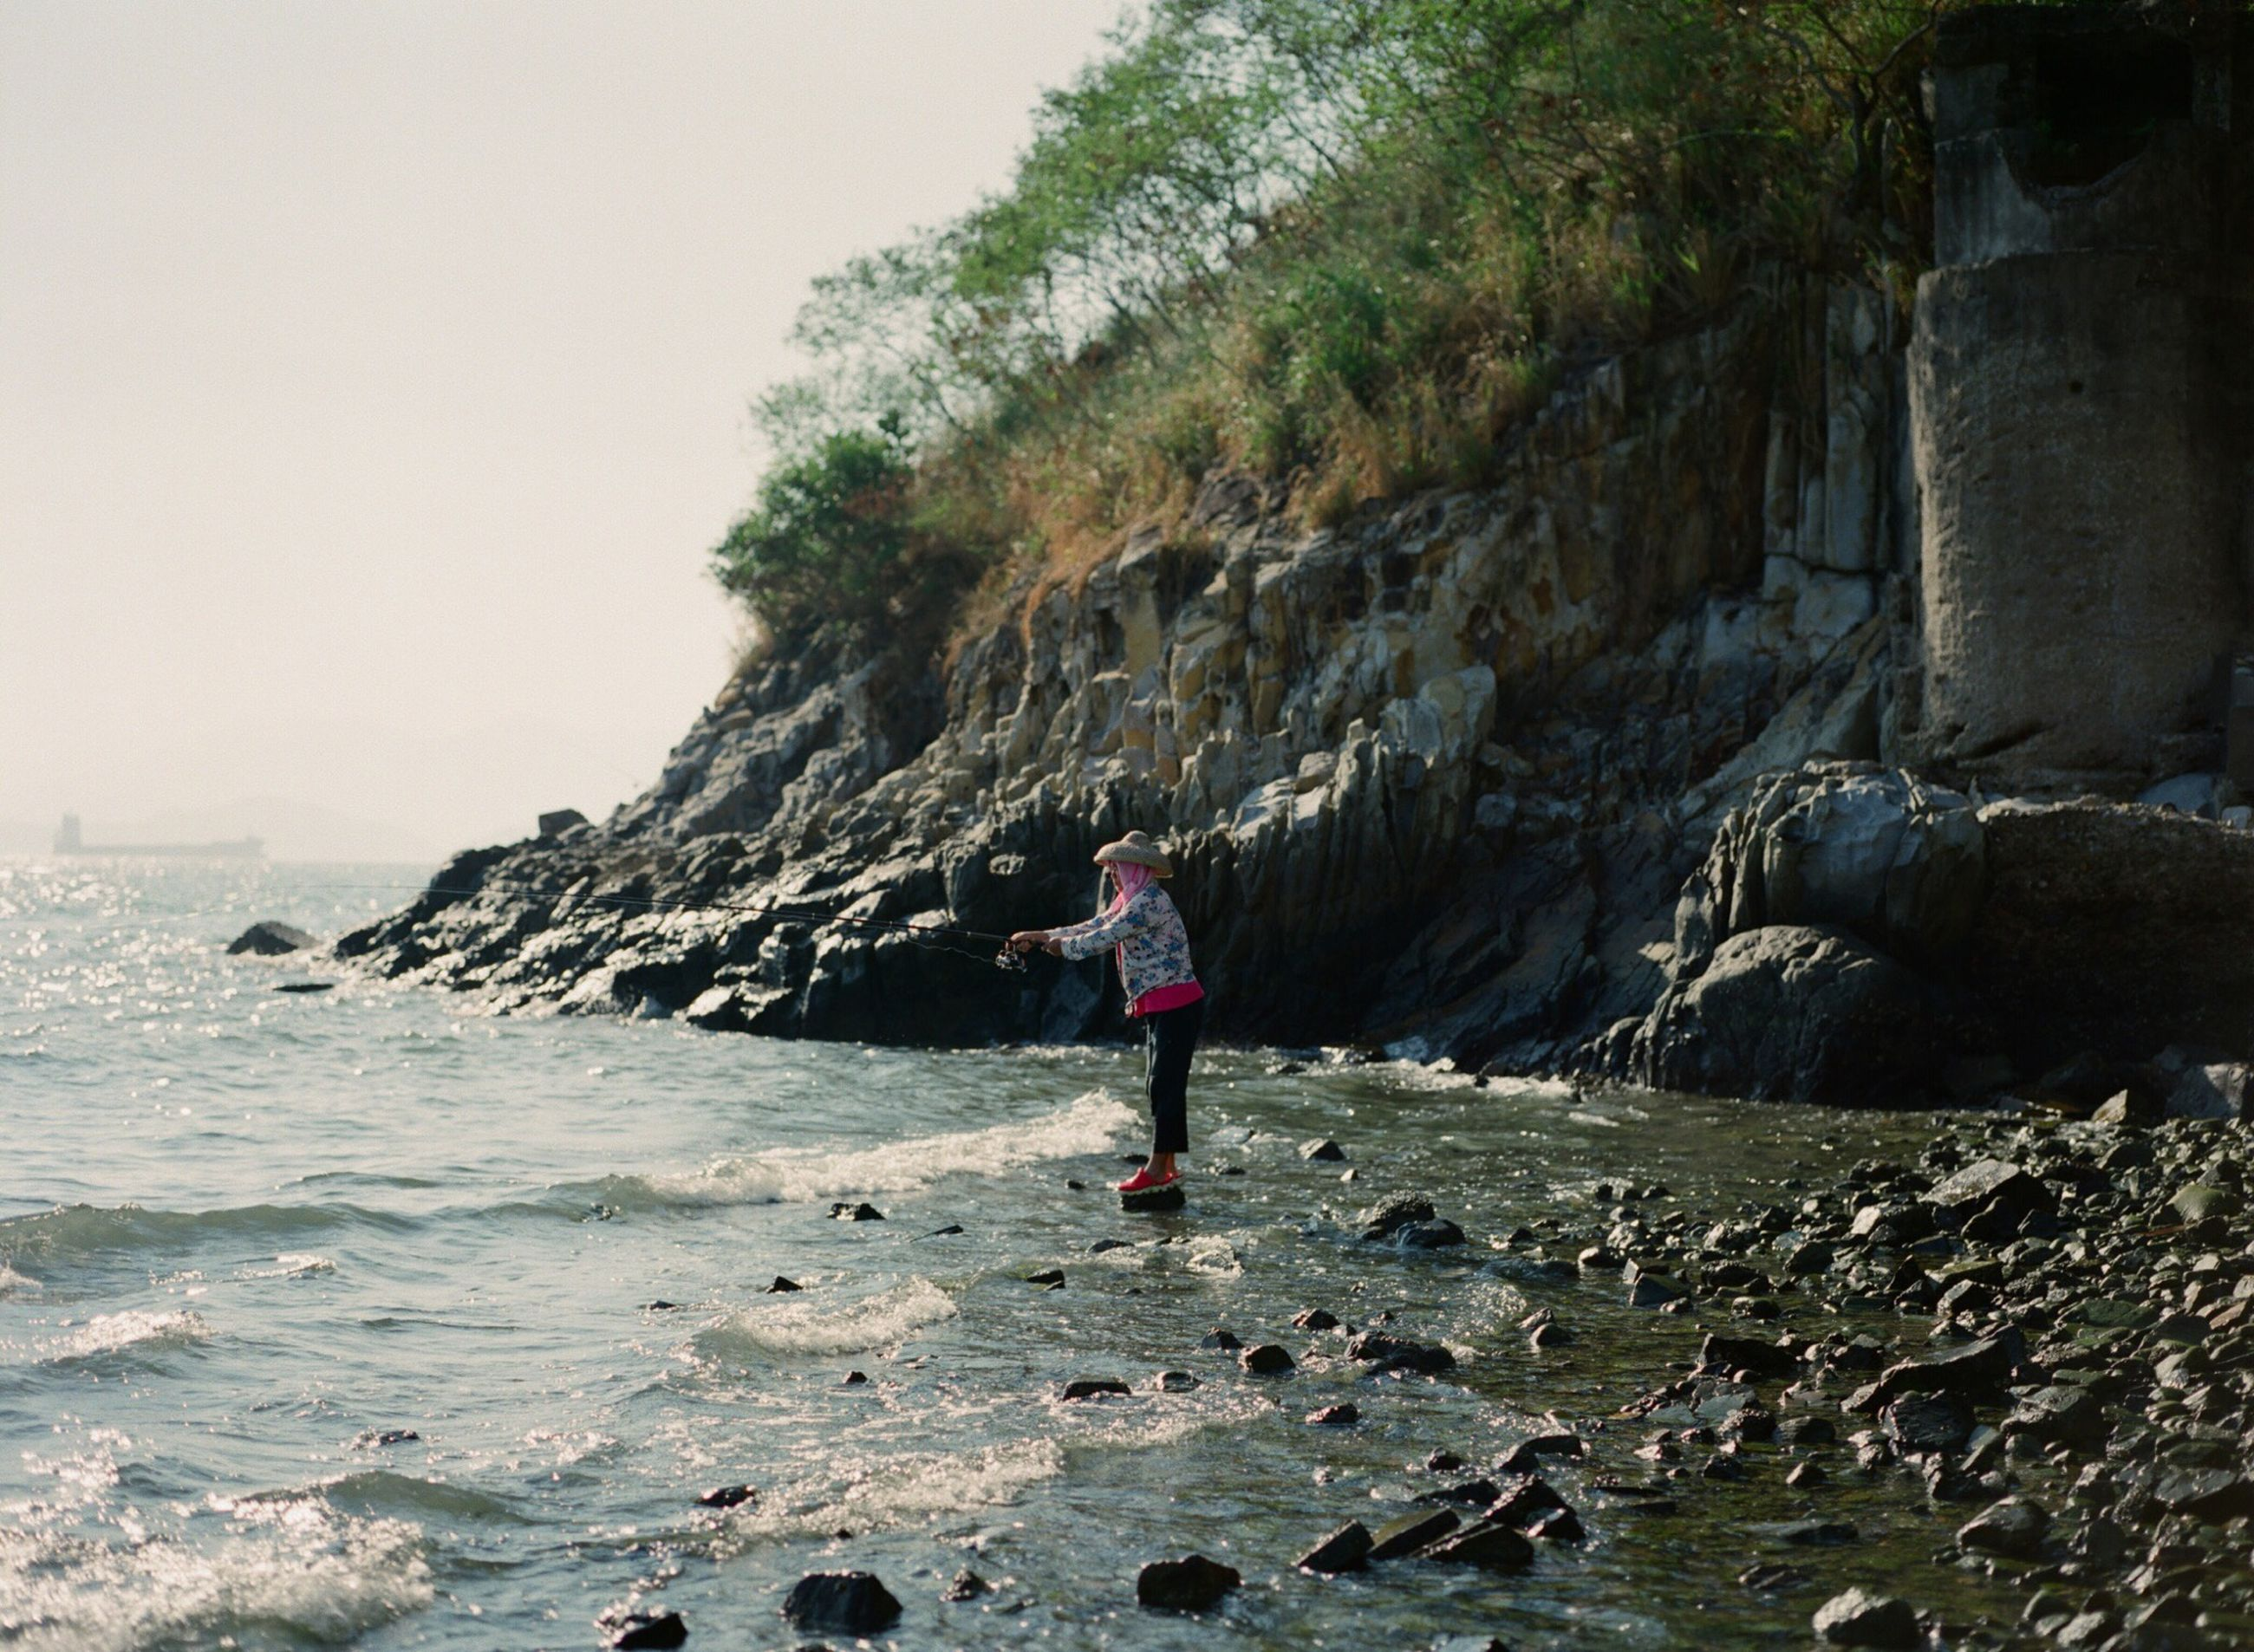 lifestyles, water, leisure activity, full length, rock - object, rear view, sea, standing, casual clothing, rock formation, scenics, person, beauty in nature, tranquil scene, beach, tranquility, nature, vacations